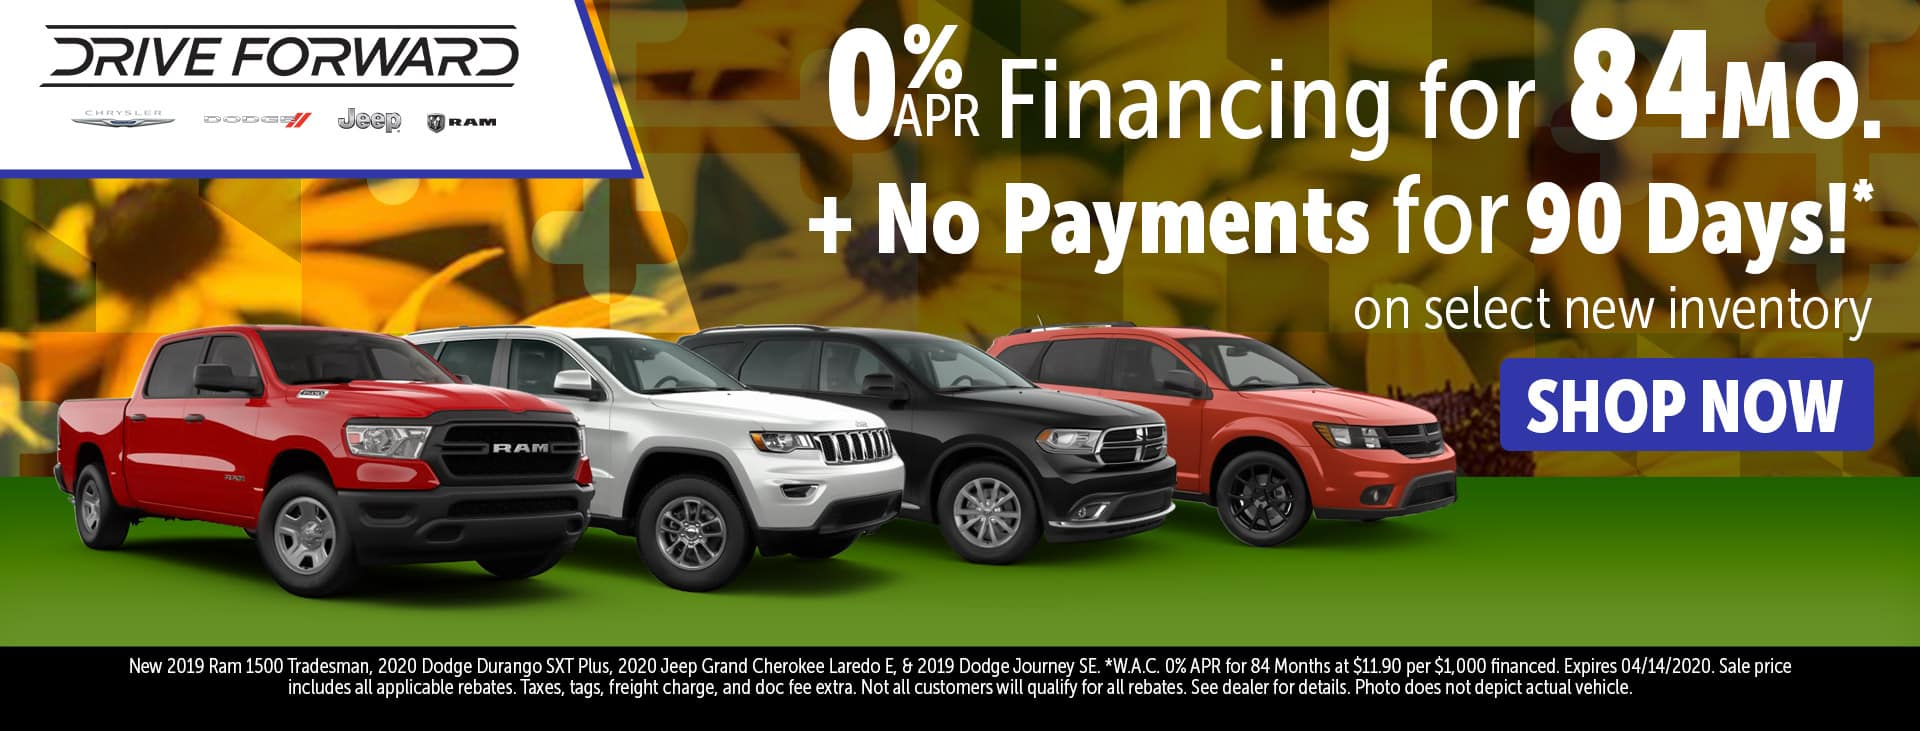 0% for 84 months + make no payments for 90 days